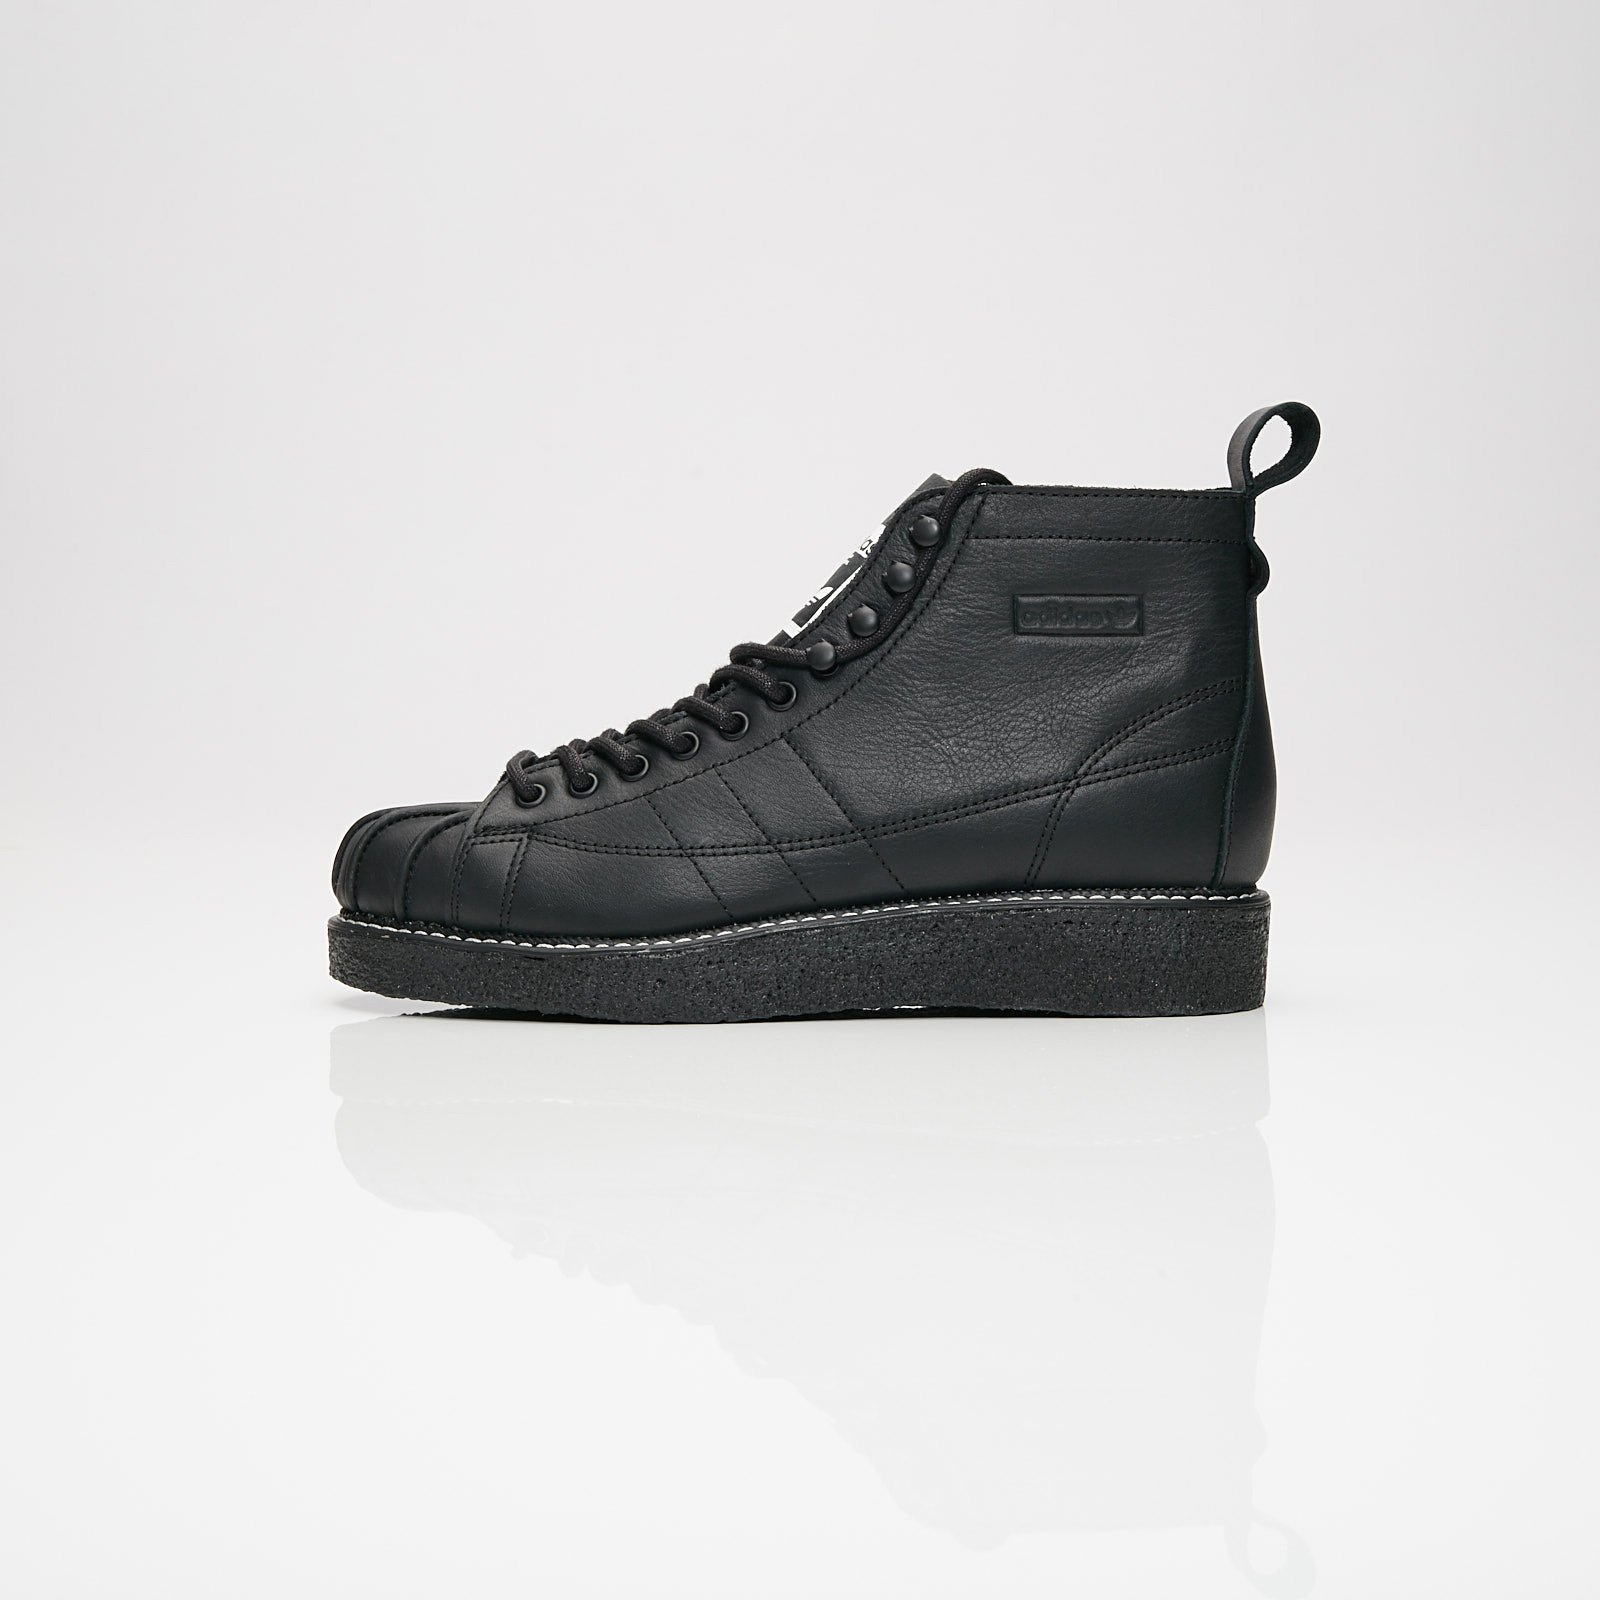 adidas superstar boot luxe w 55% di sconto sglabs.it